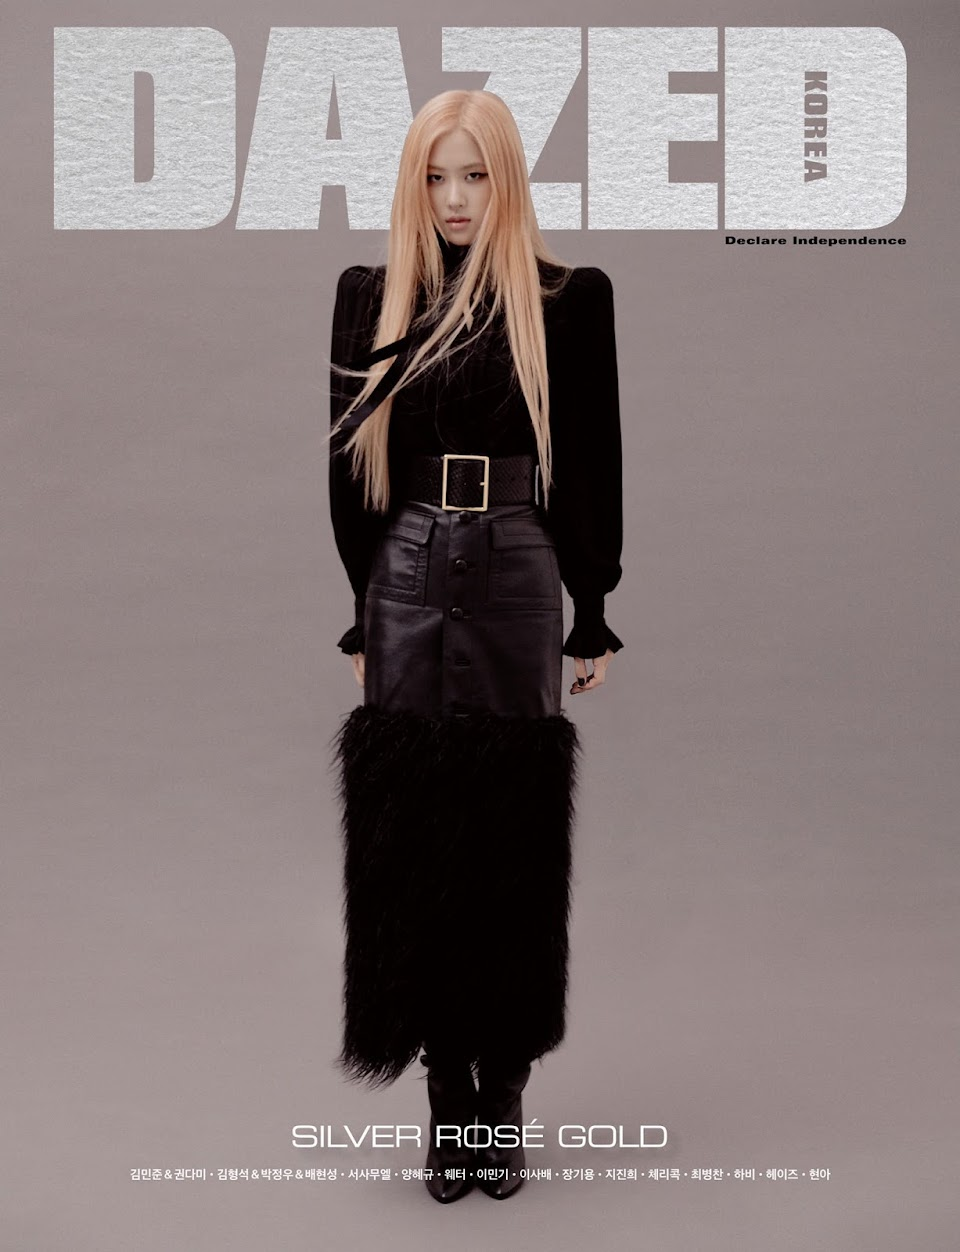 blackpink rose dazed korea october